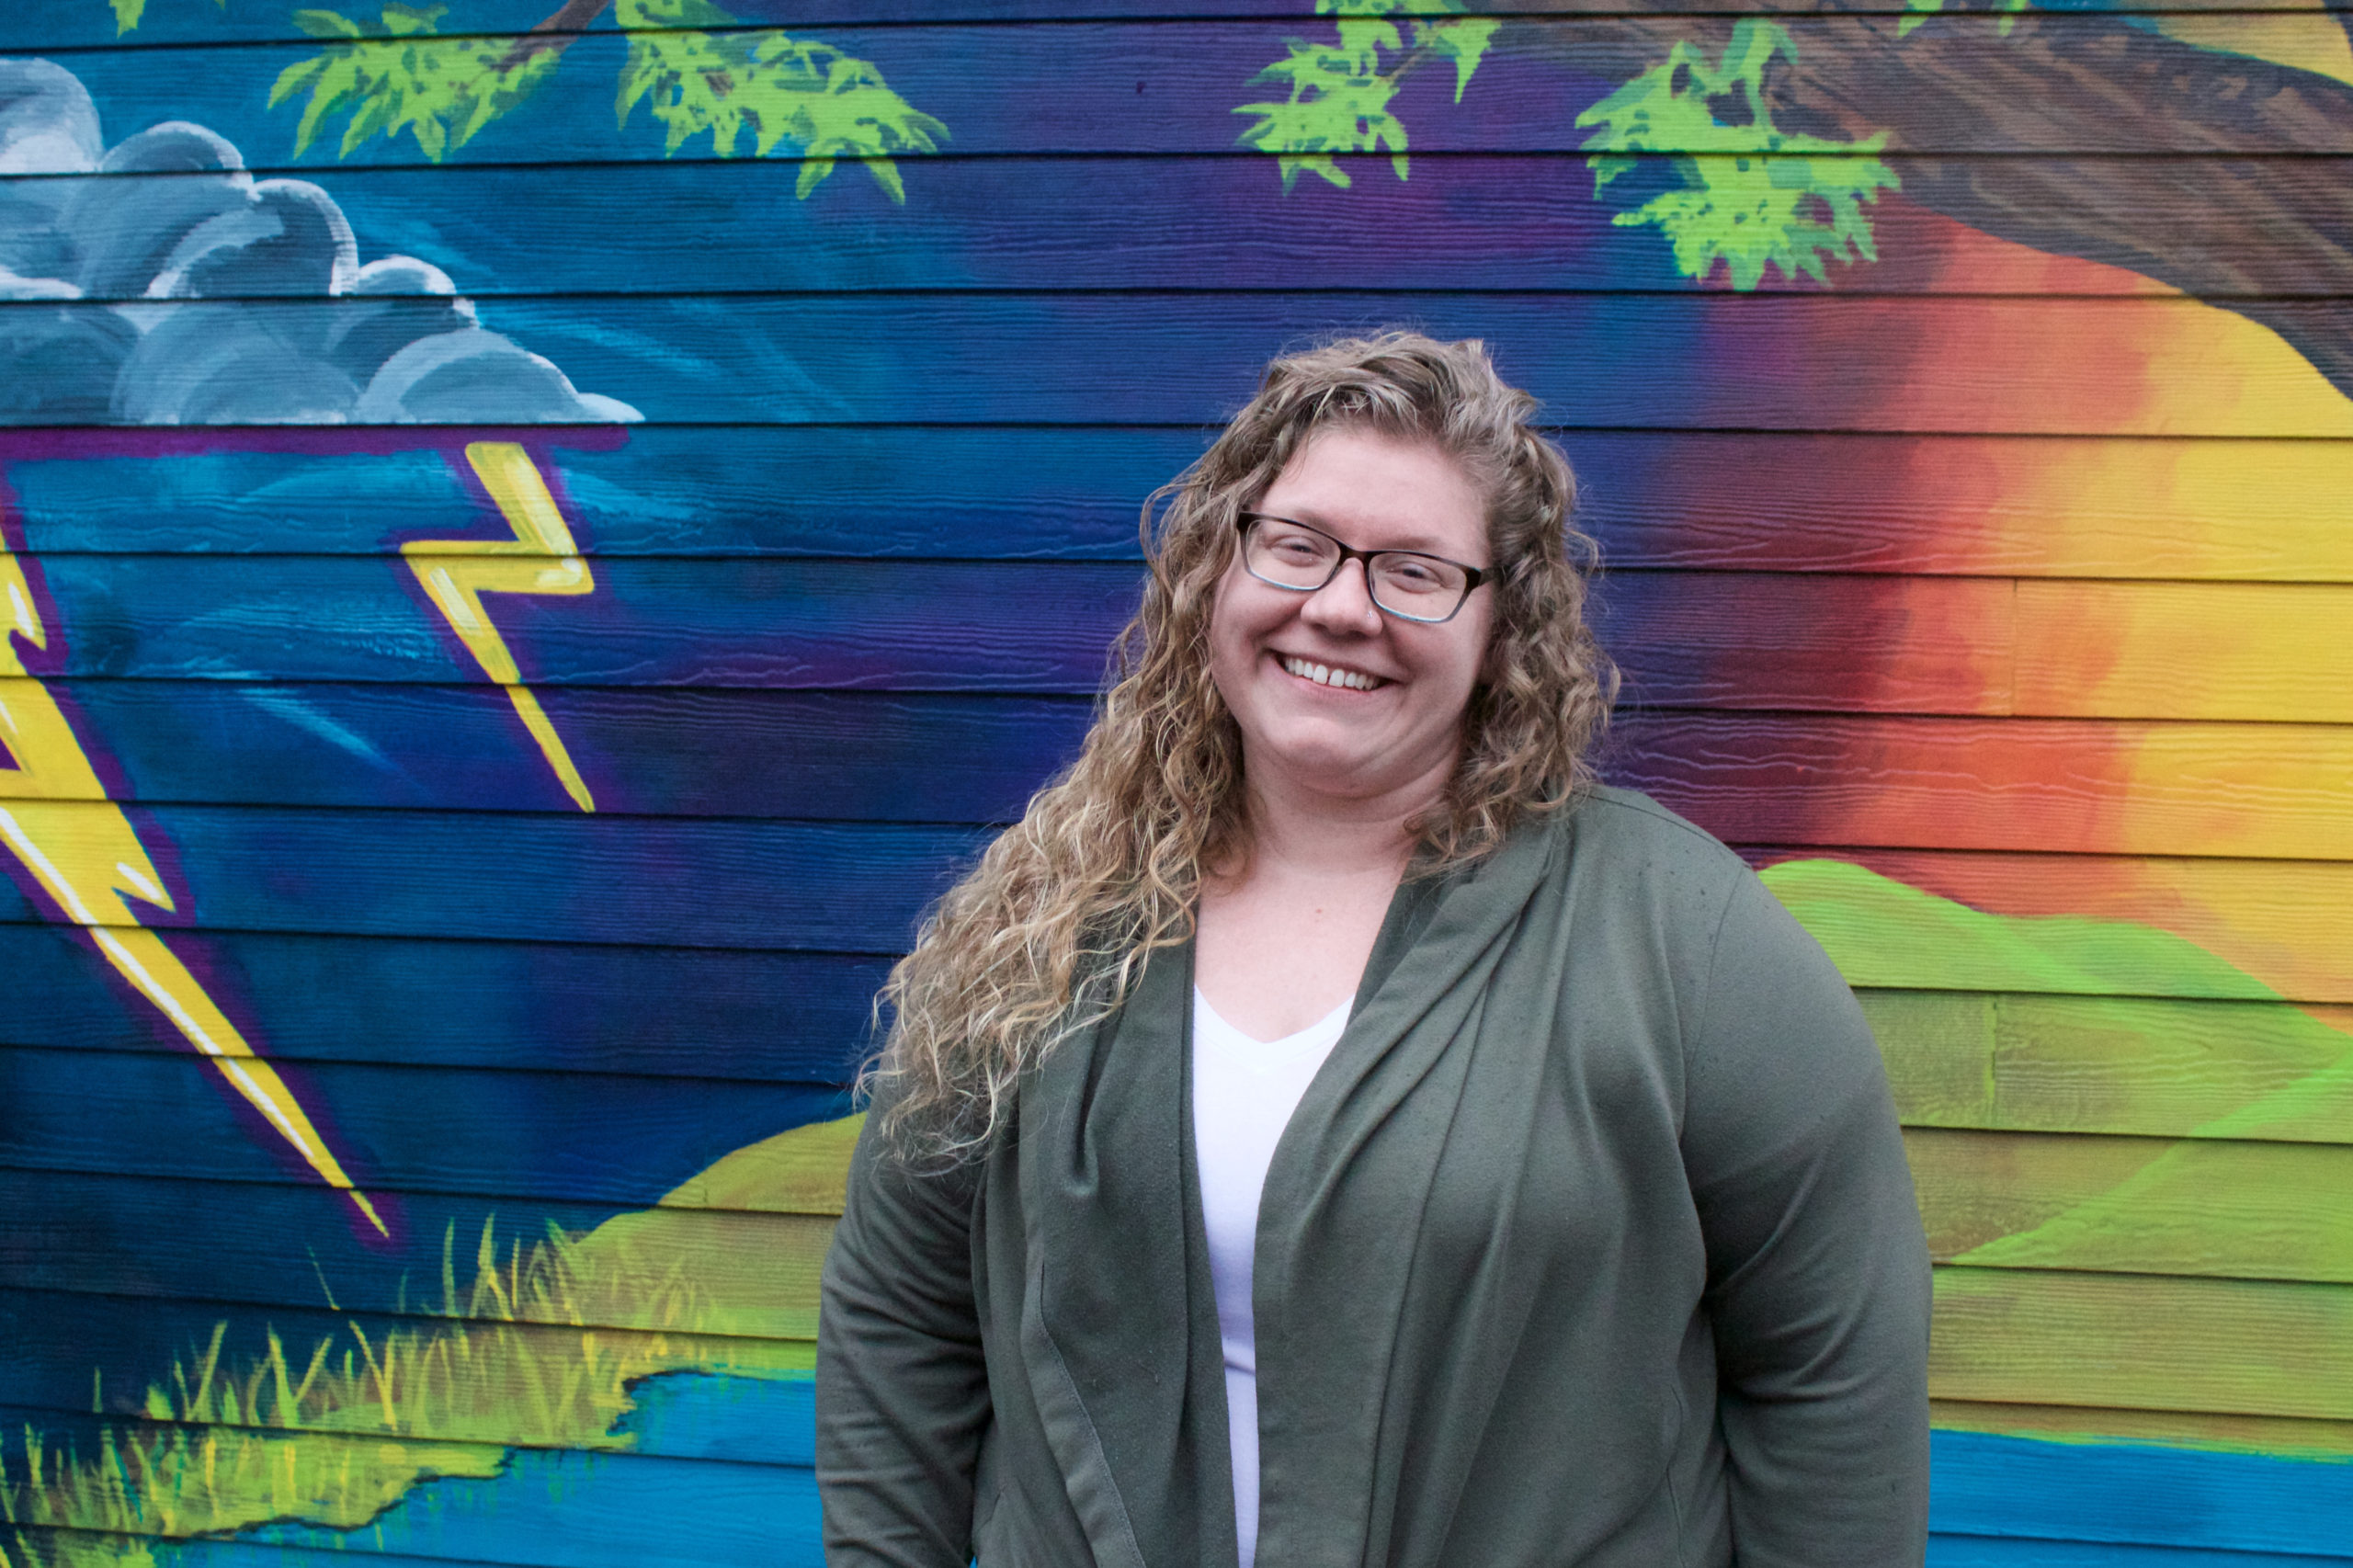 White woman in glasses smiling, a mural with bright colors is behind her.